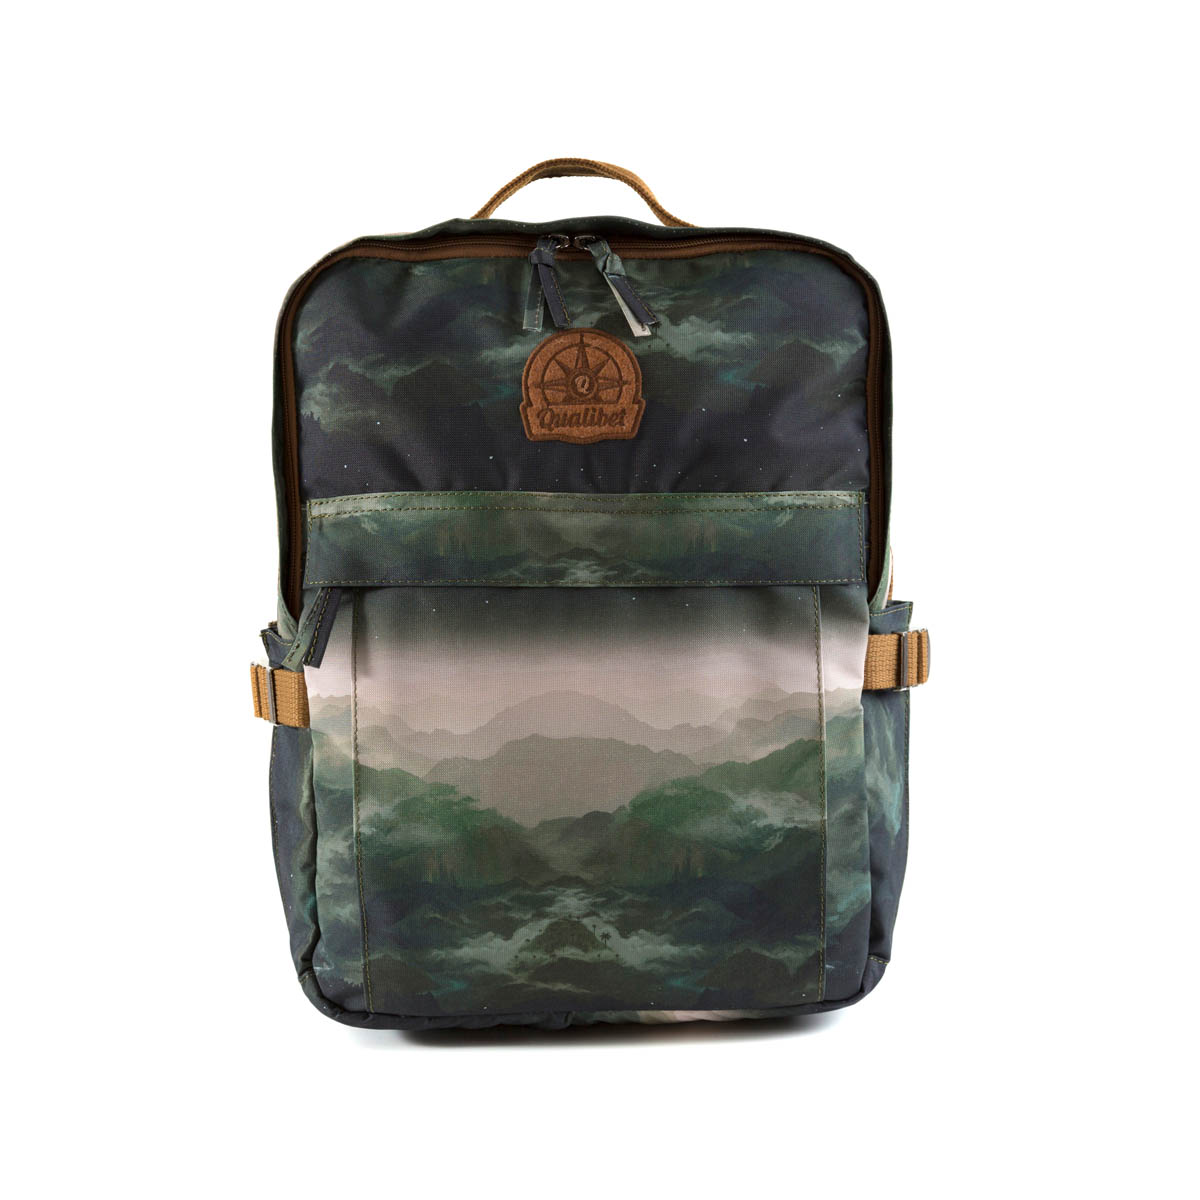 Square Backpack Montañas (Vegan)